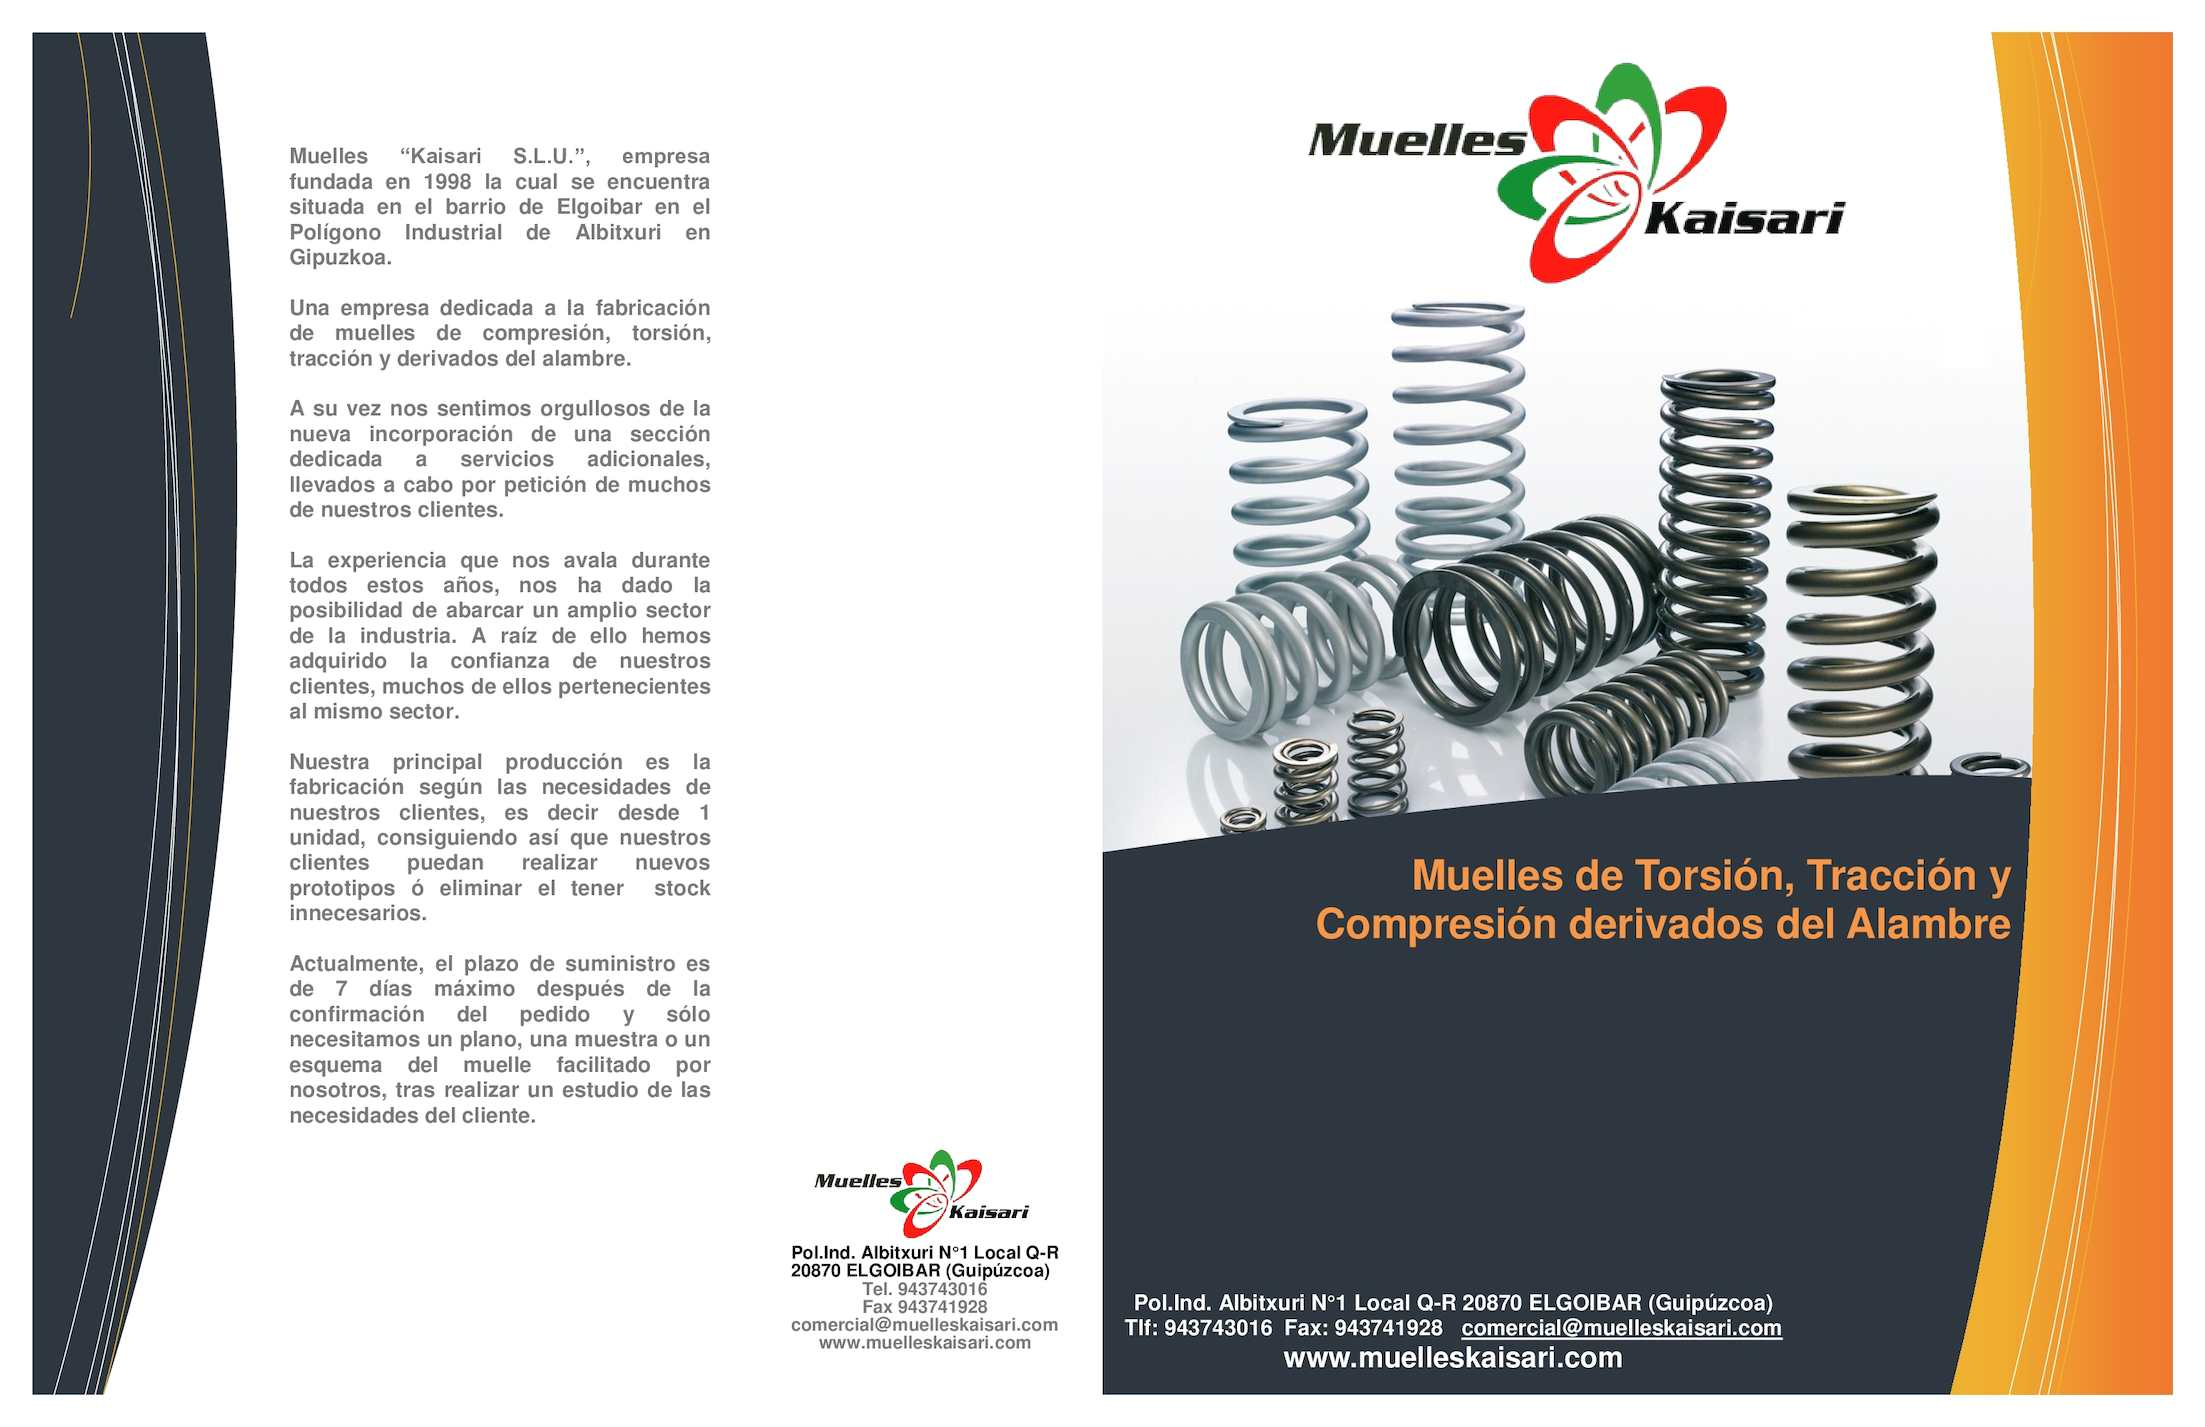 Resorte de torsion catalogo